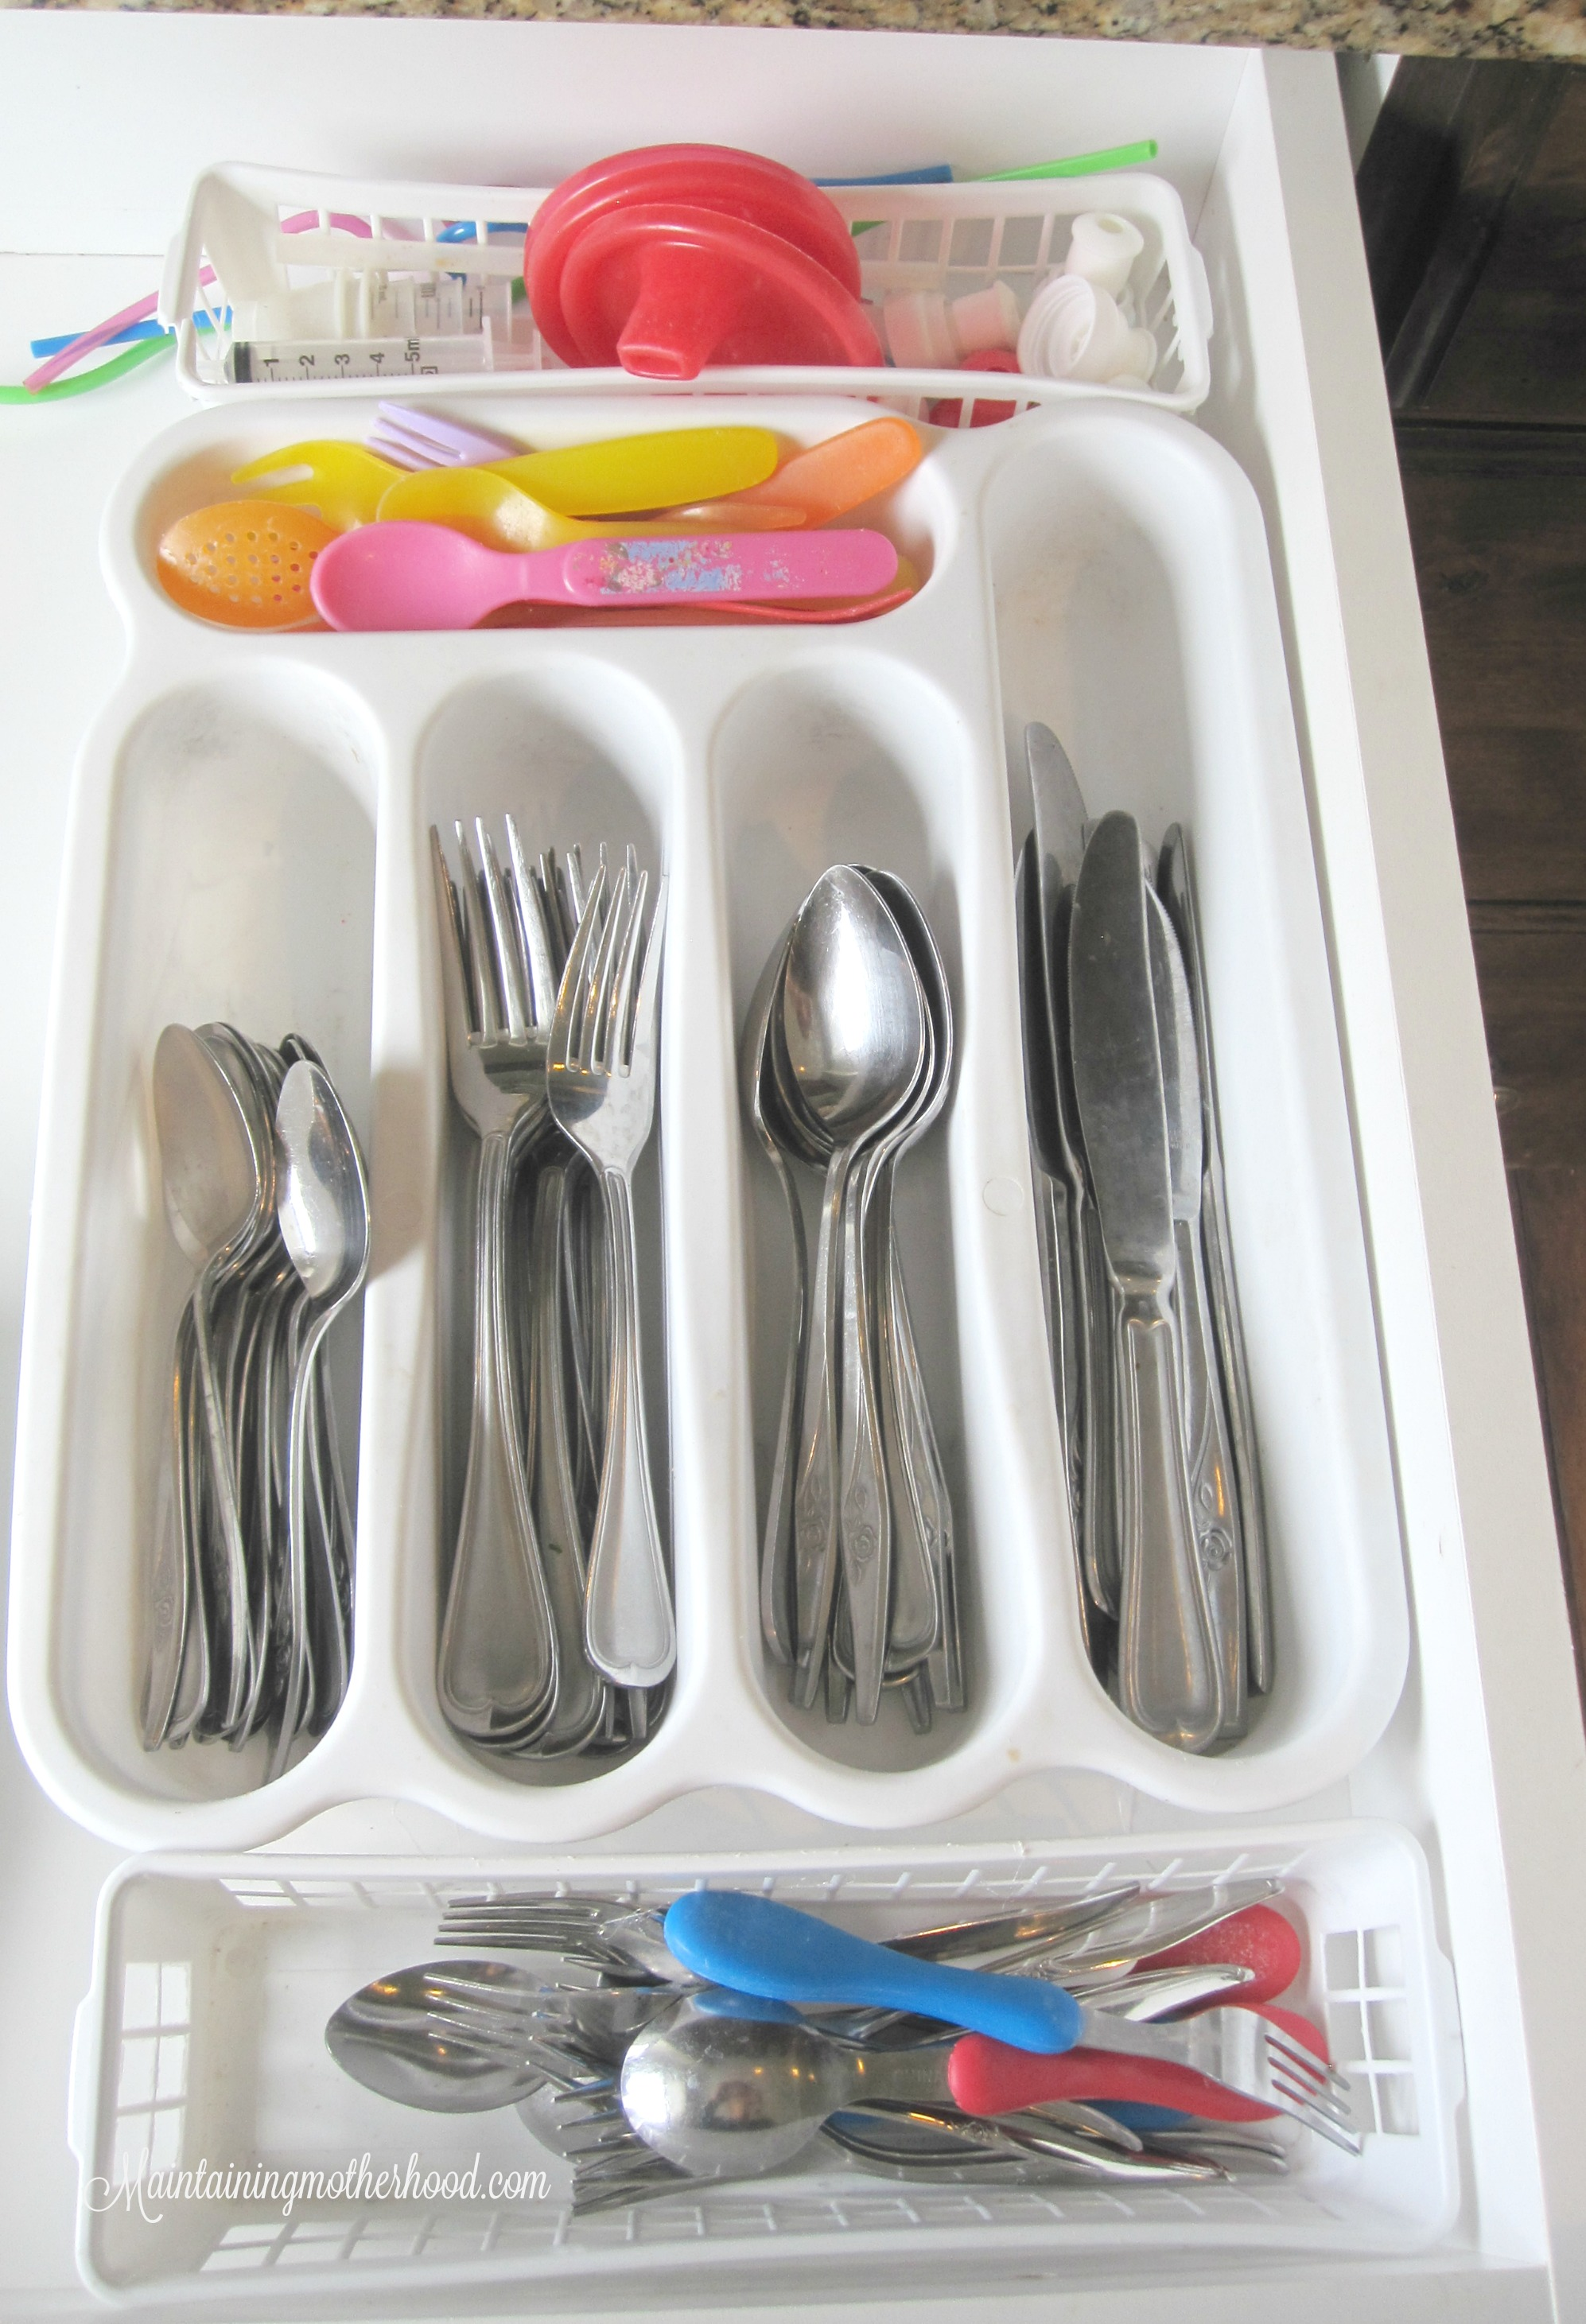 I have tried everything to keep kitchen drawers organized, and avoid things sliding around every time we shut the drawer. Who knew the answer was so simple!